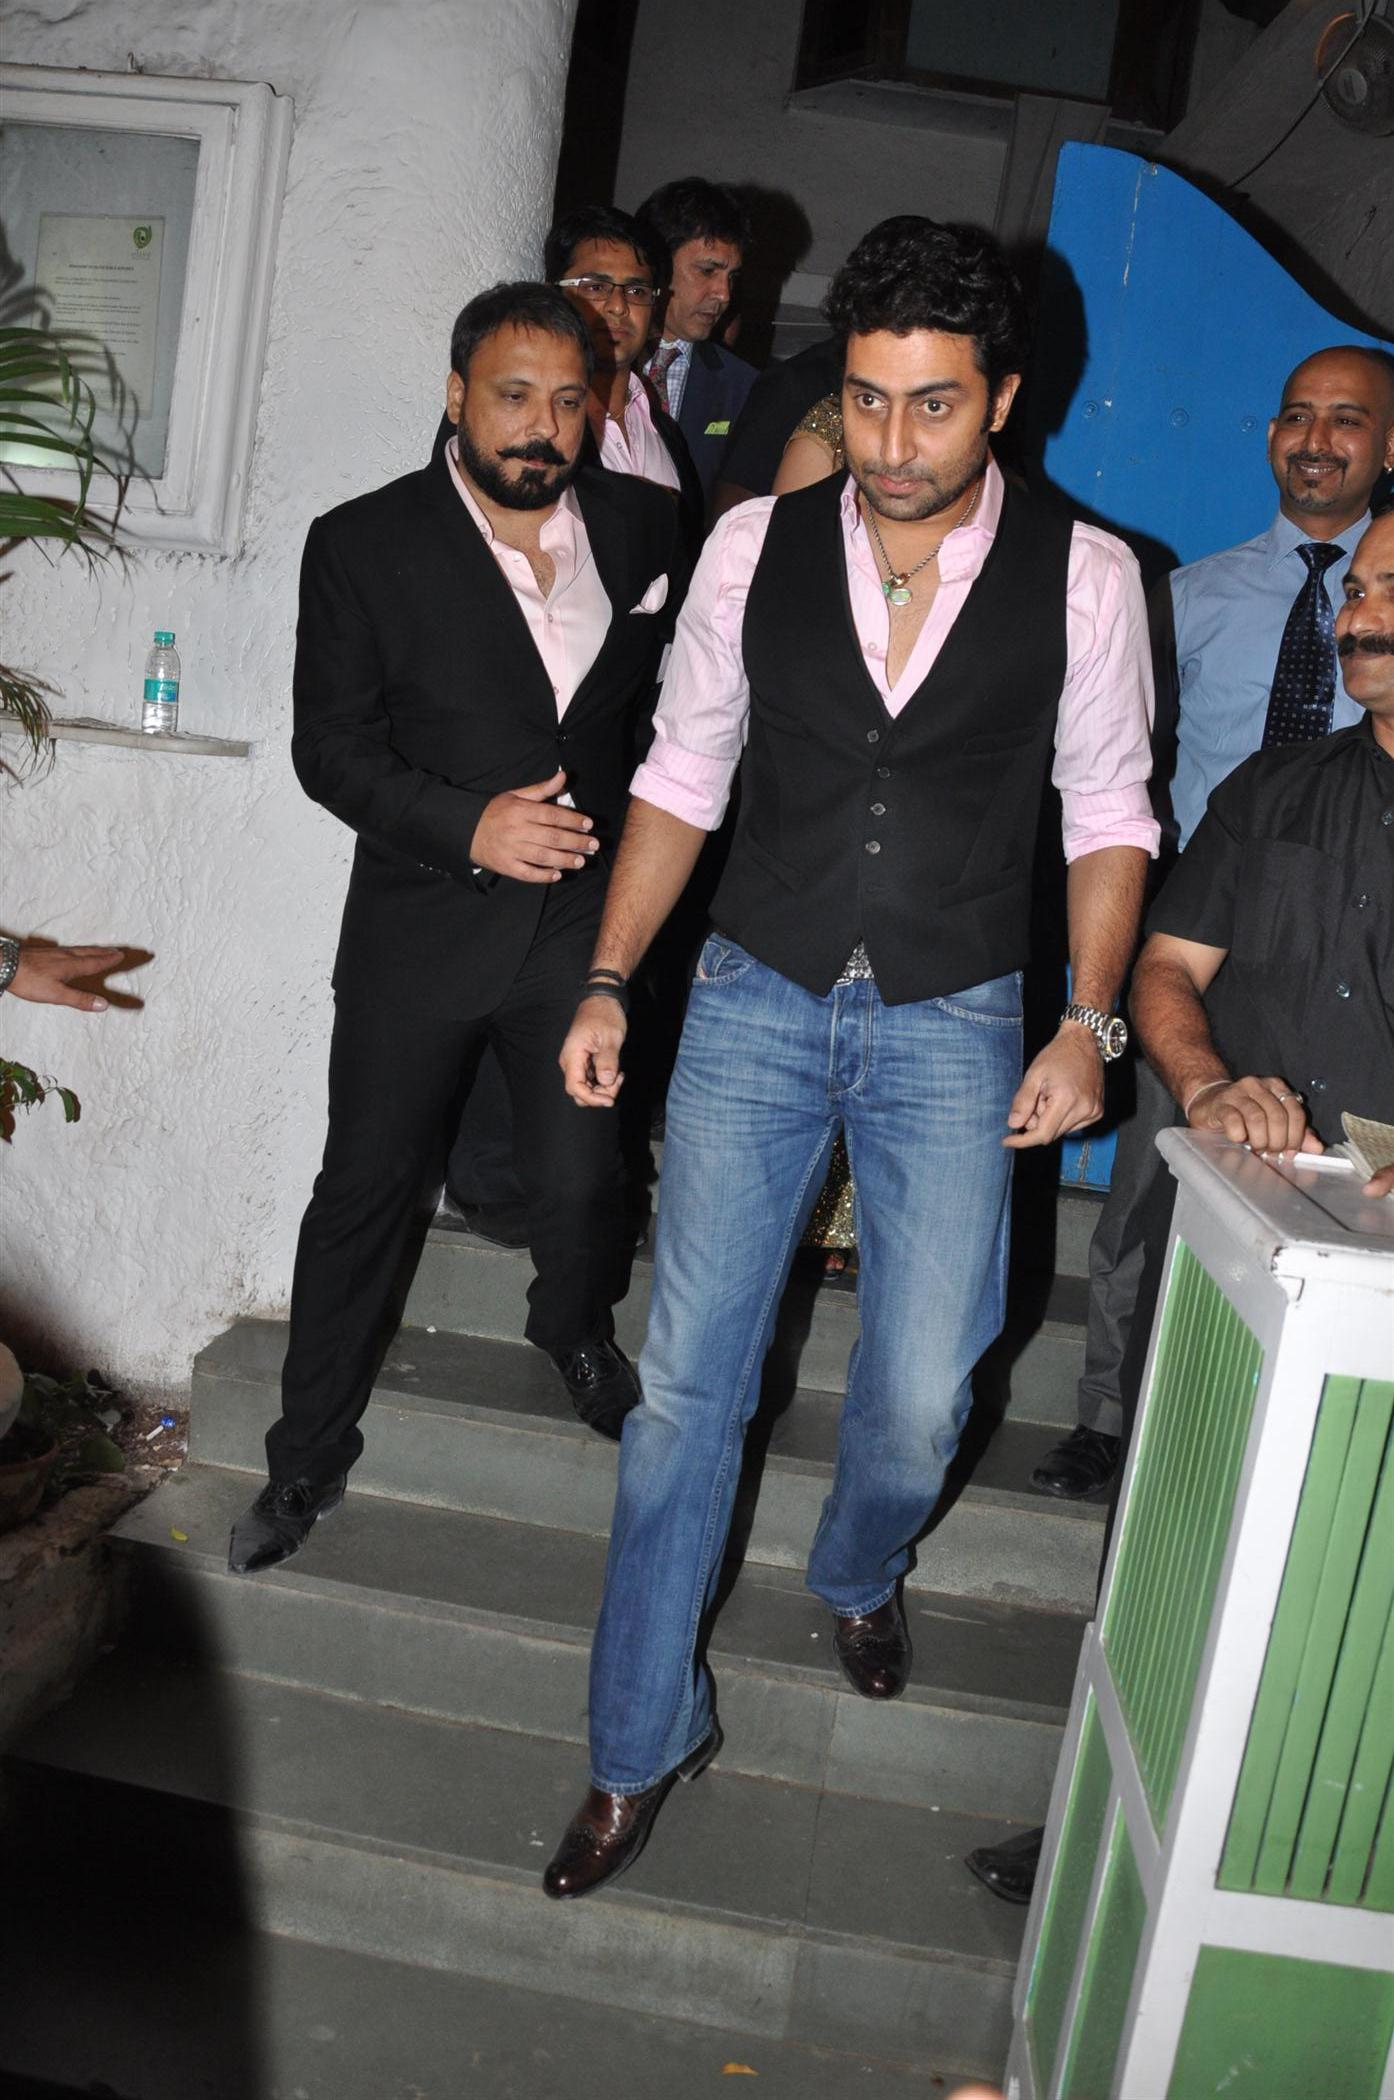 Abhishek Bachchan At Wedding Reception Party Of Producer Bunty Walia In Mumbai 2 Rediff Bollywood Photos On Rediff Pages Bio father,film producer, philanthropist and sports buff location mumbai tweets 6,4k followers 9,8k. rediff pages rediffmail